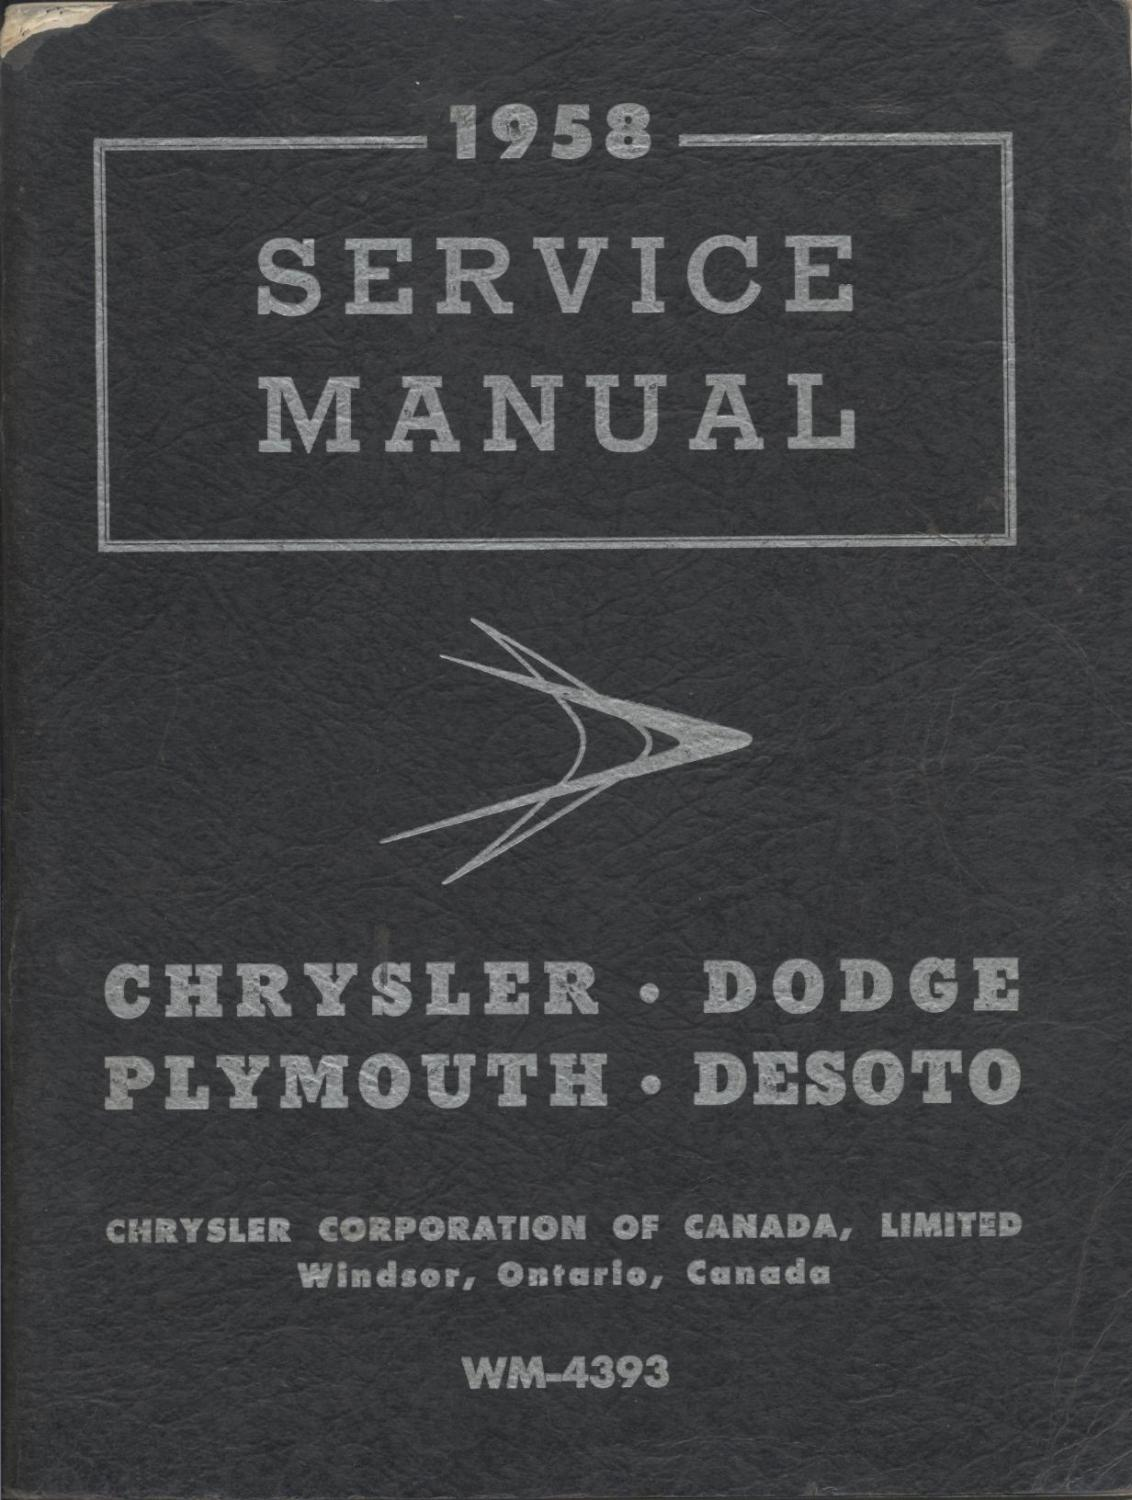 1958 Service Manual: Chrysler, Dodge, Plymouth, DeSoto: Chrysler  Corporation of Canada